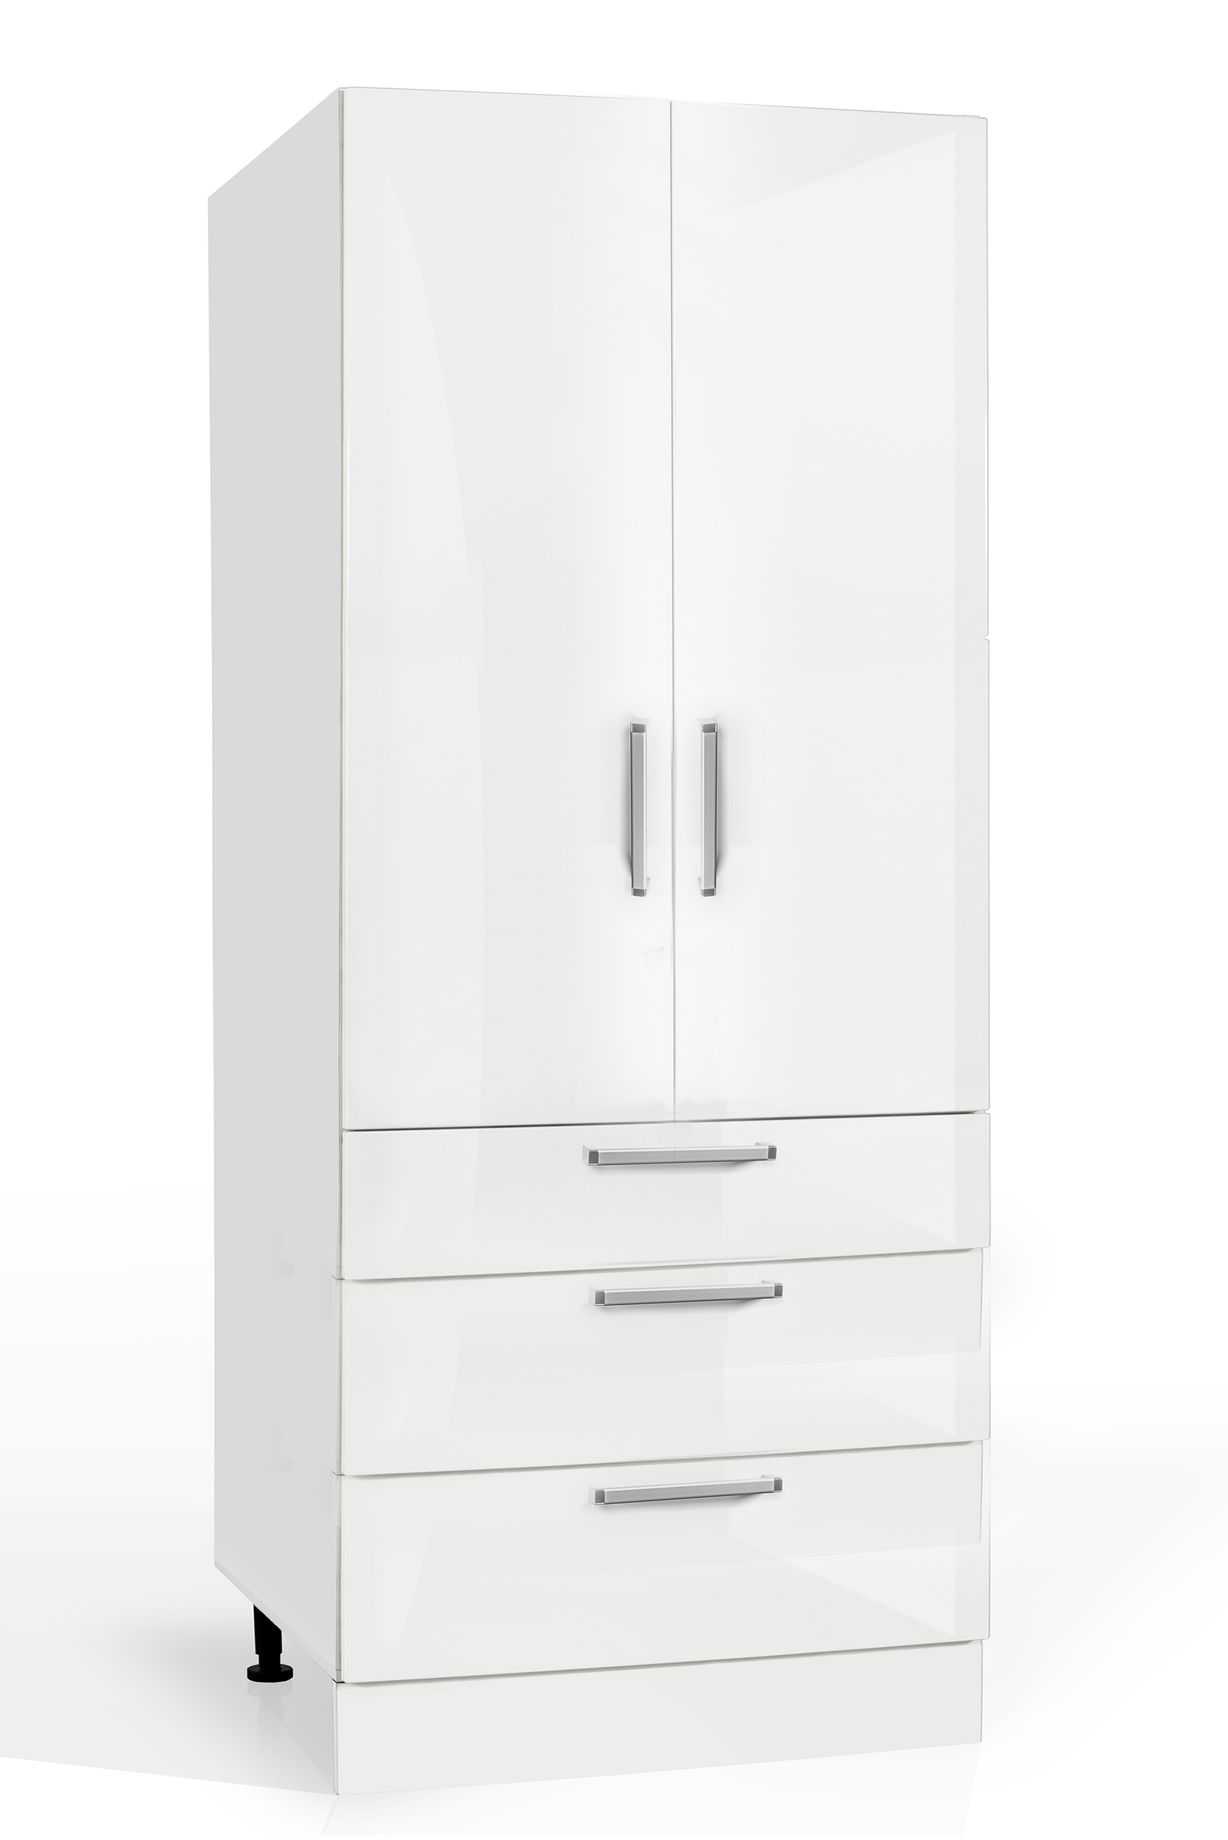 900mm Wide Pantry 2 Door With 3 Drawers Euro Kitchen Cabinets